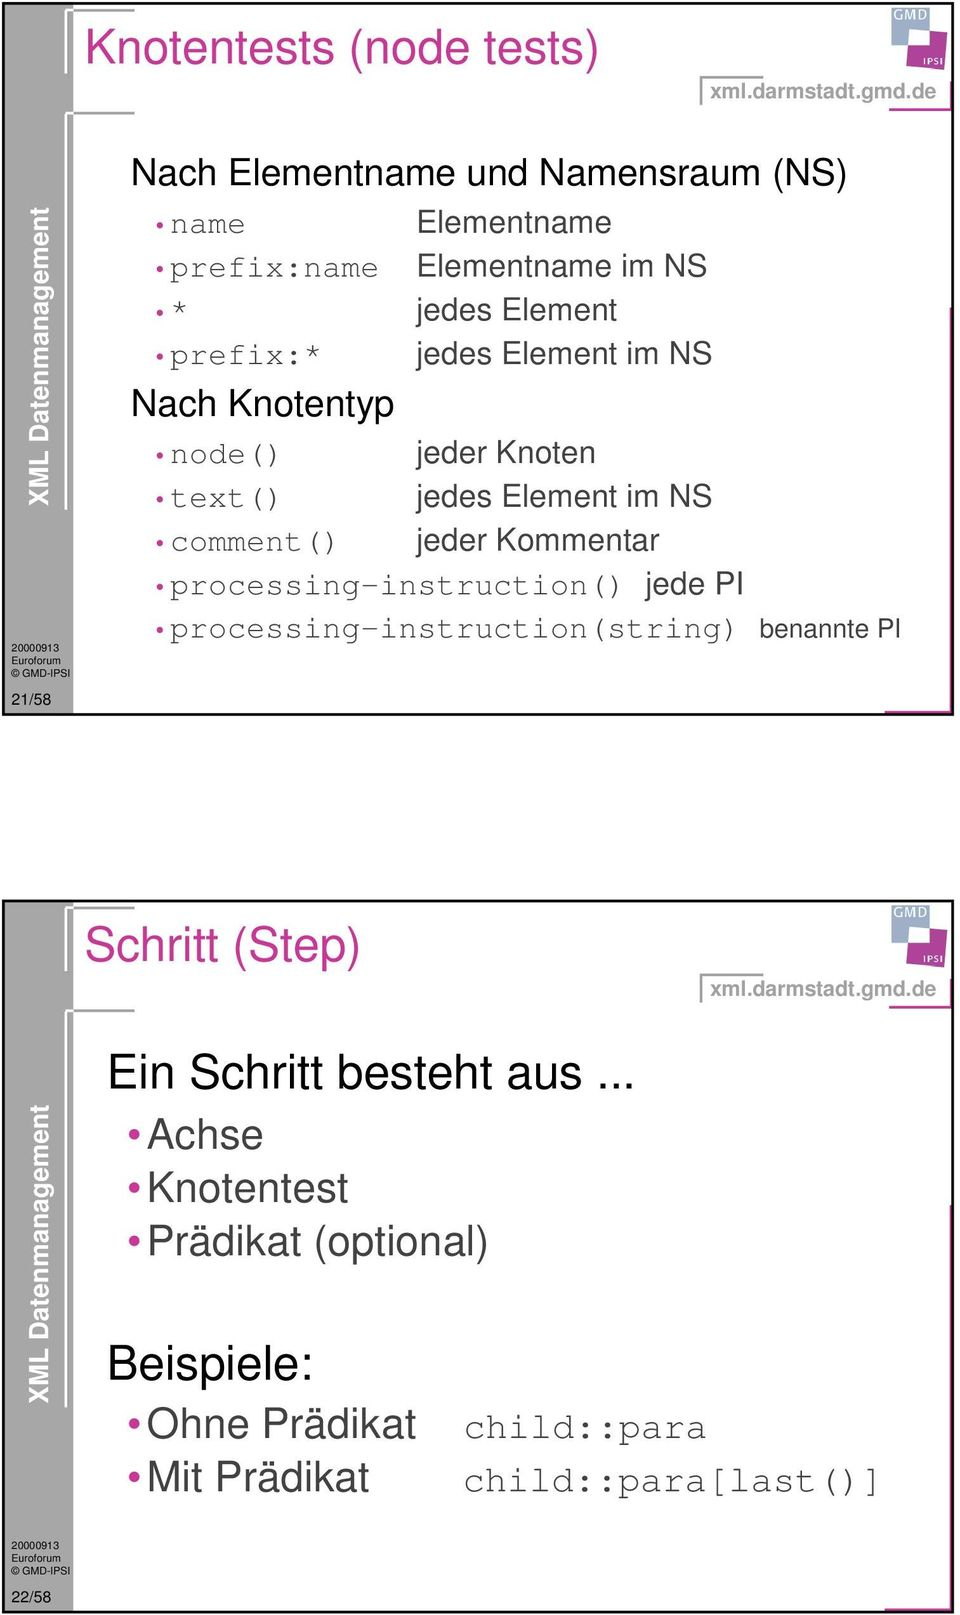 comment() jeder Kommentar processing-instruction() jede PI processing-instruction(string) benannte PI Schritt (Step)